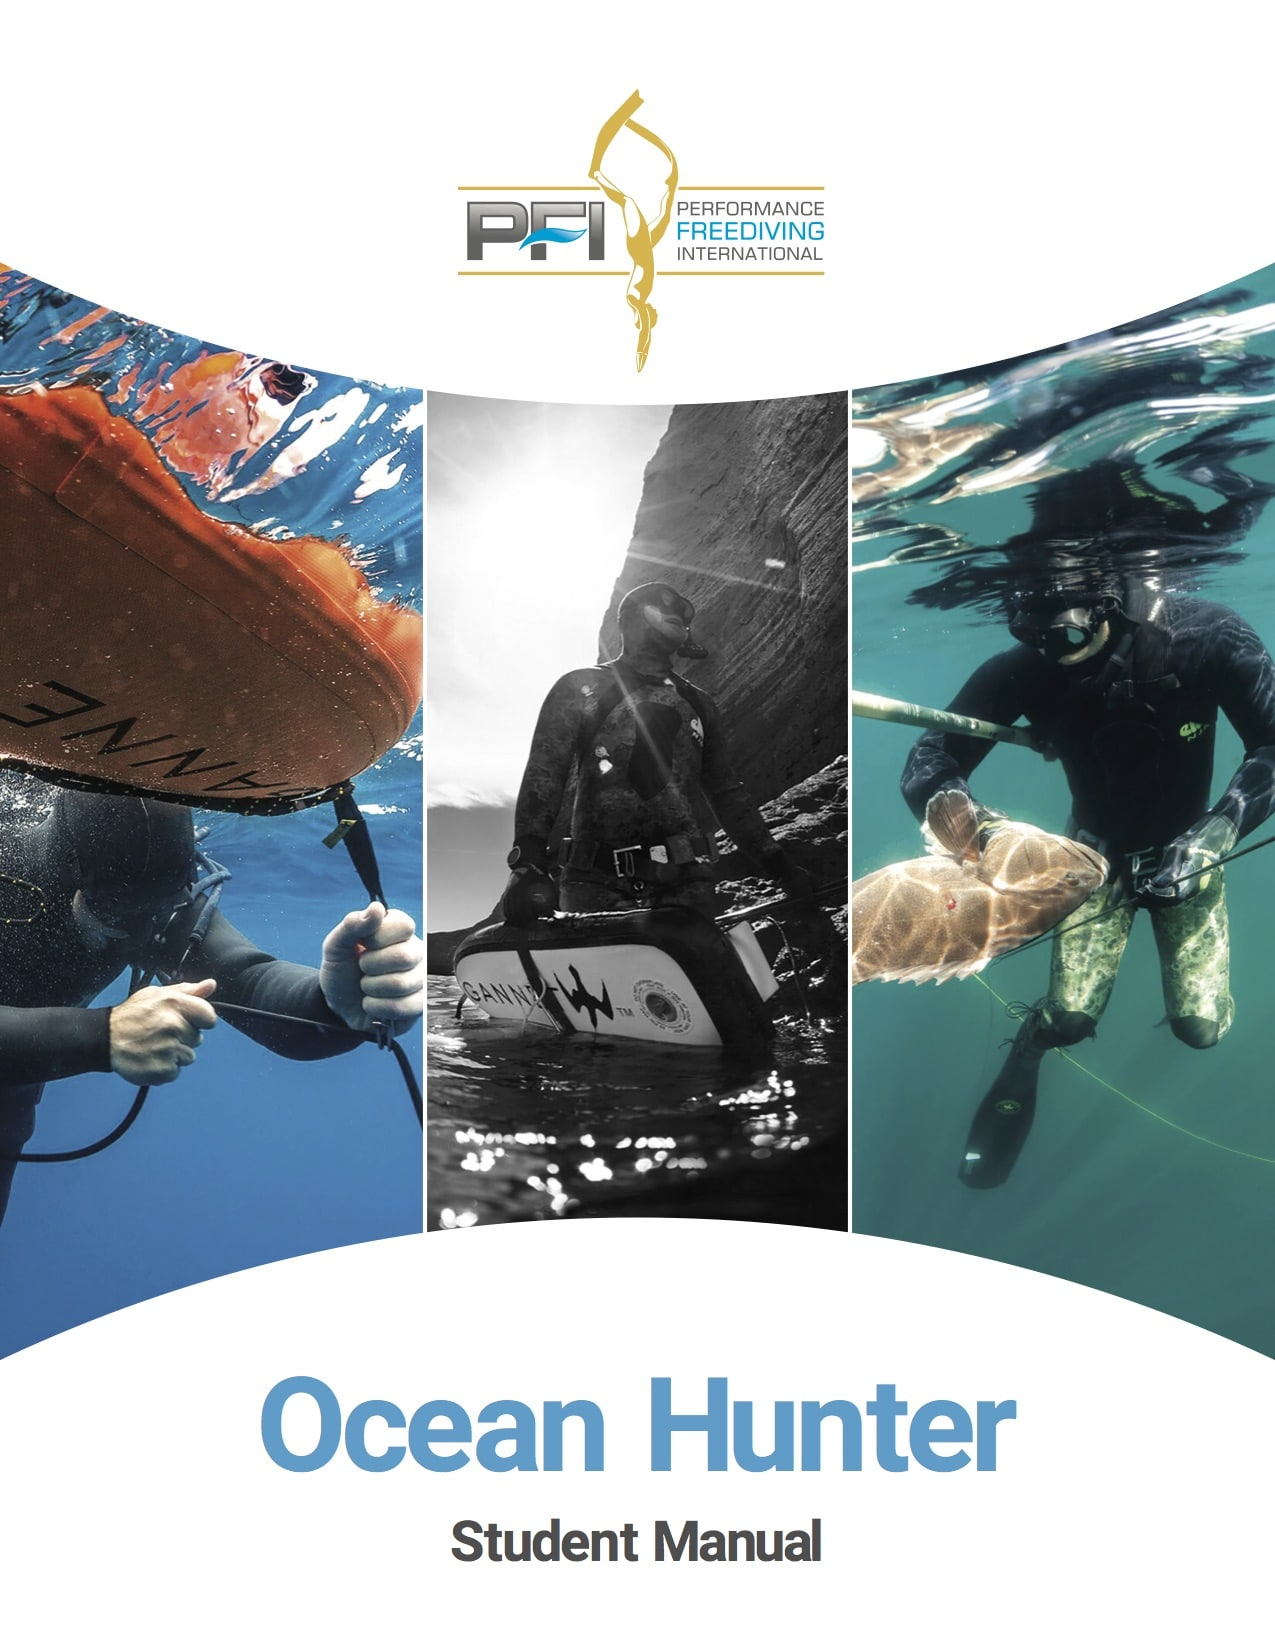 Ocean Hunter program from PFI